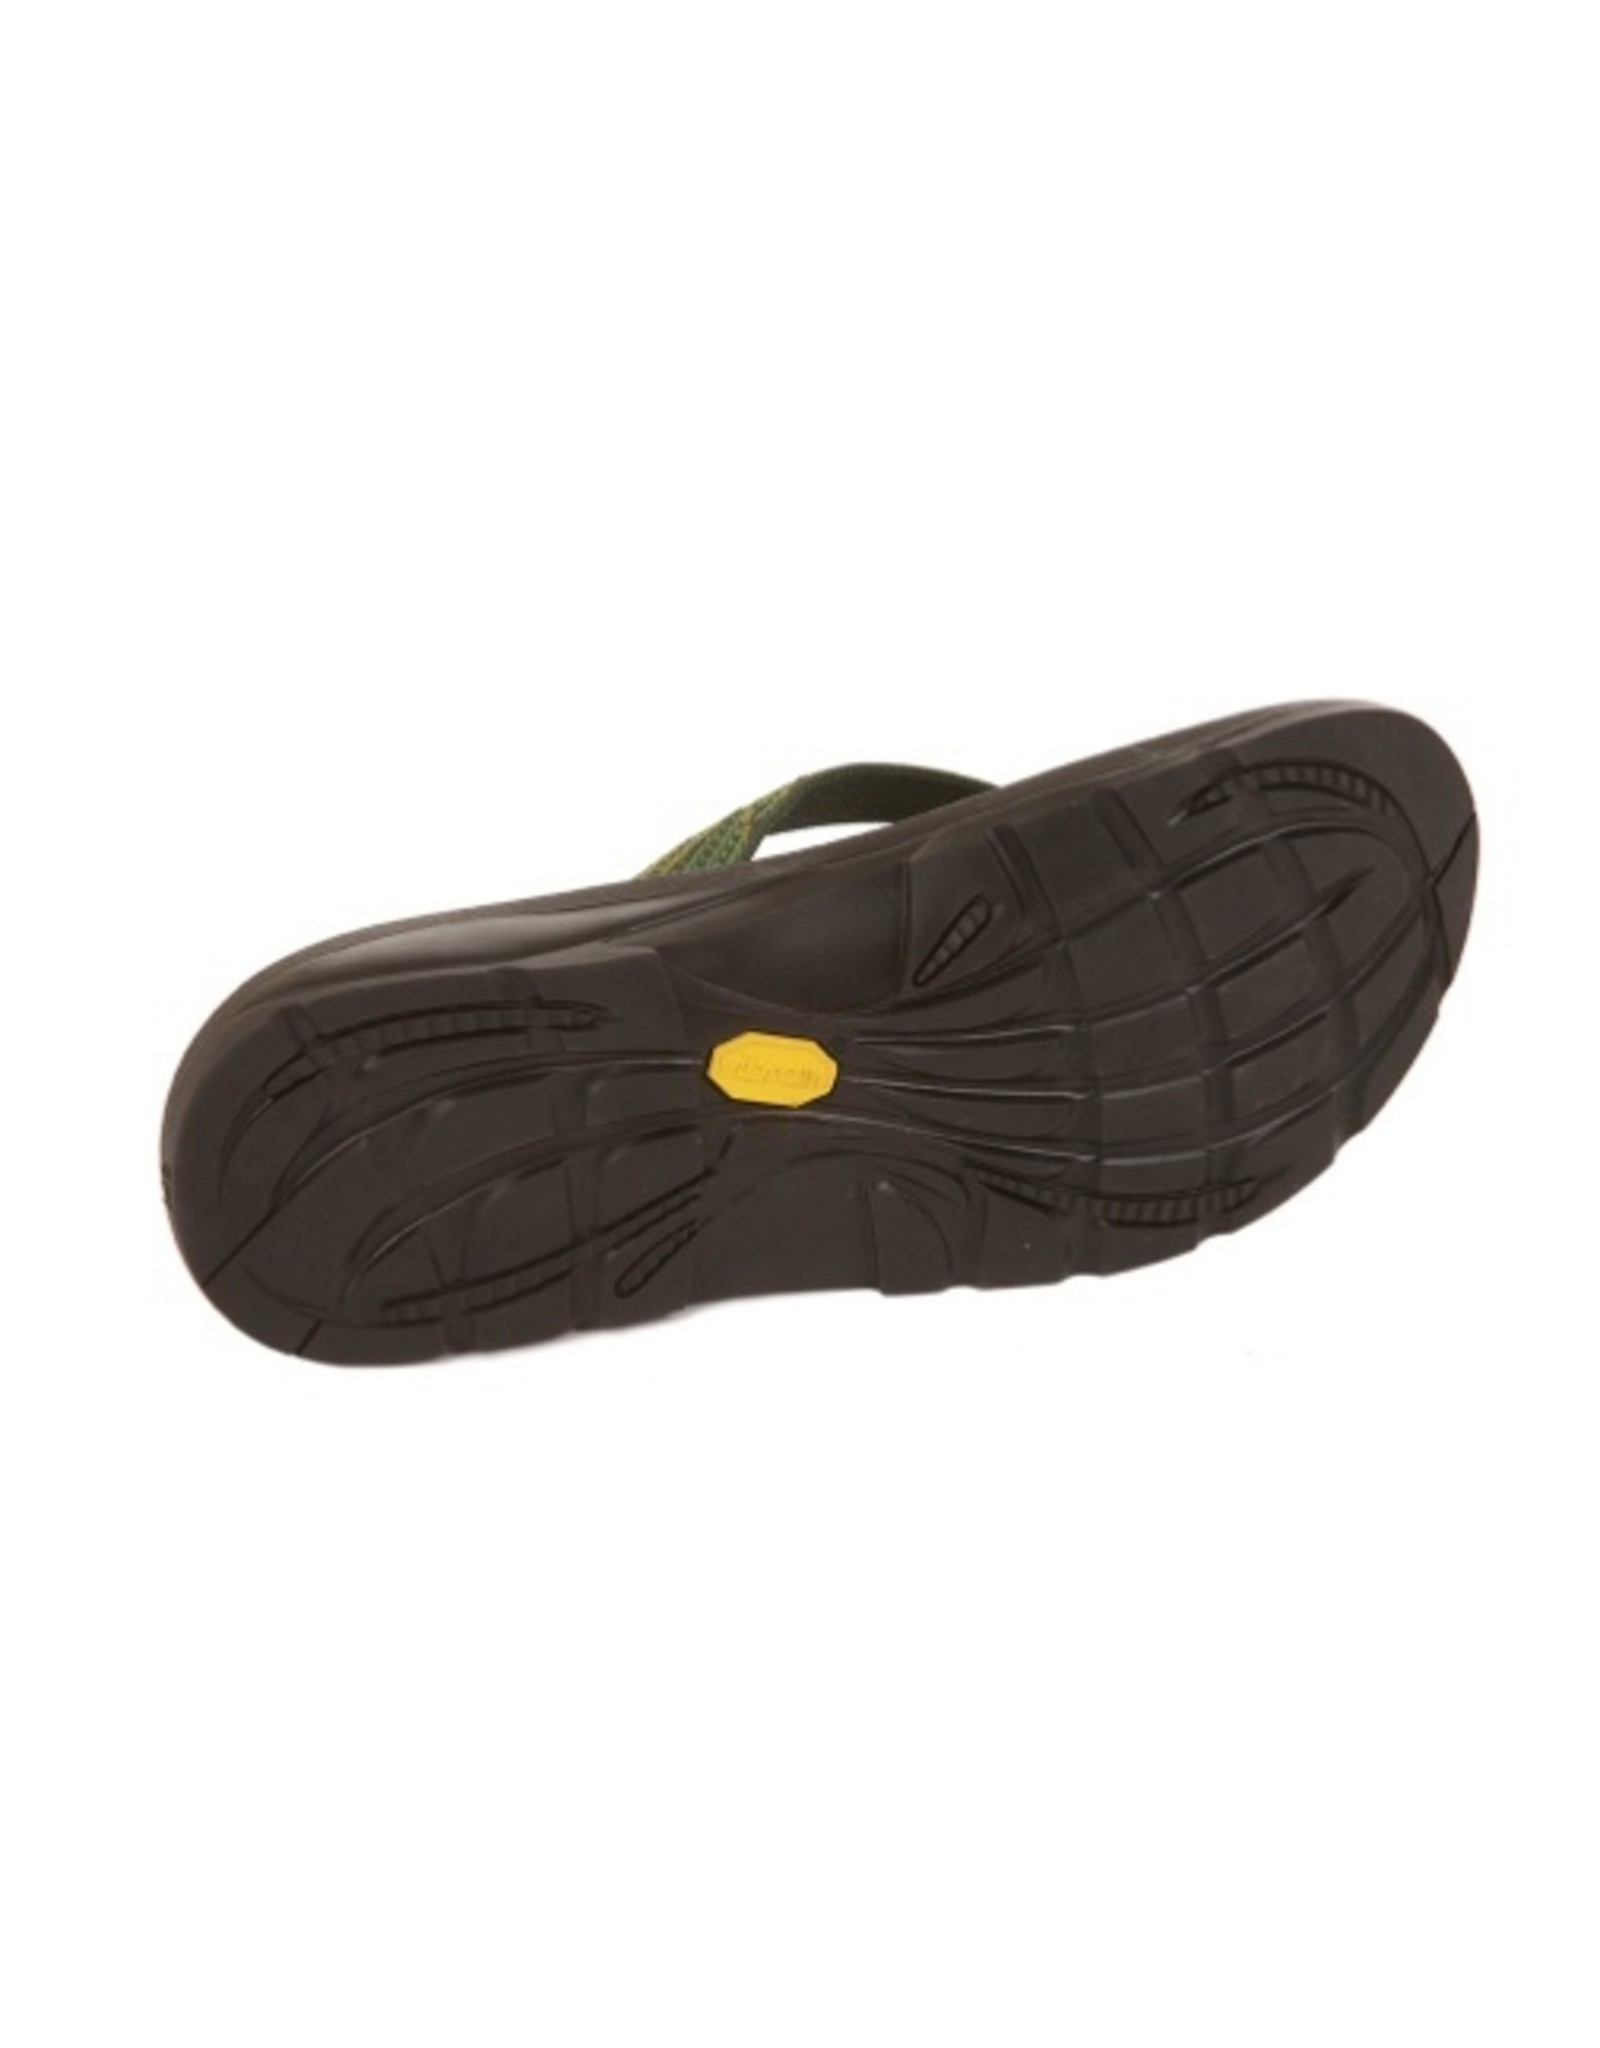 Fishpond Fishpond Chaco Flips (Size 13)